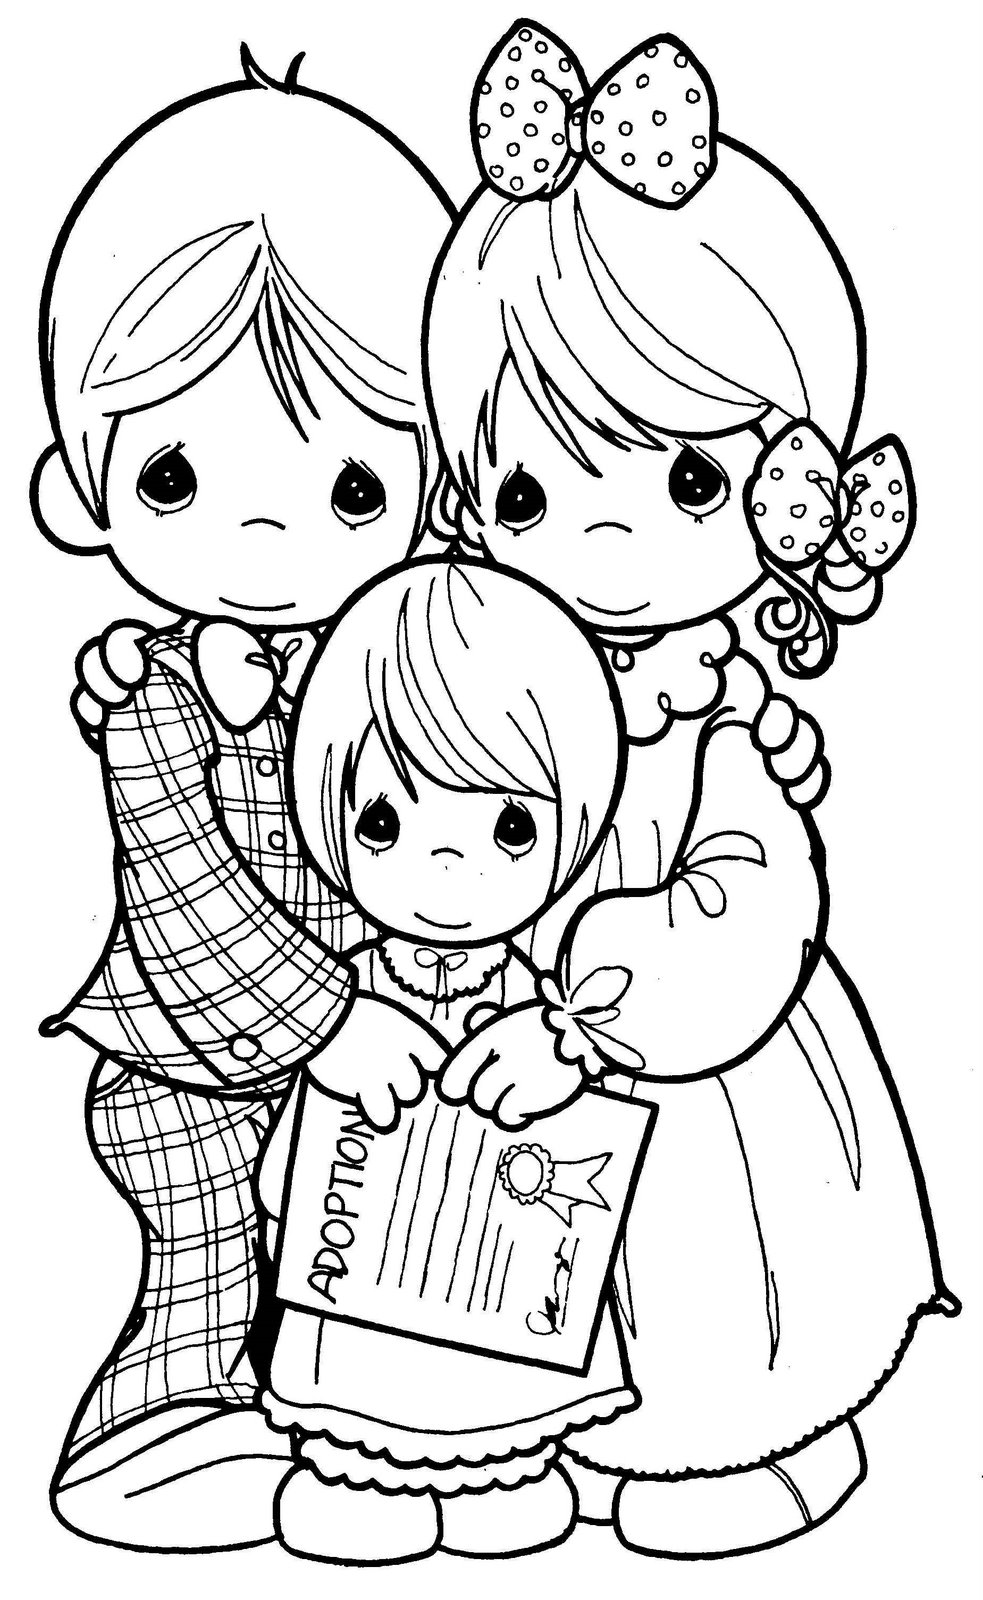 coloring pages of families - the gallery for precious moments family coloring pages